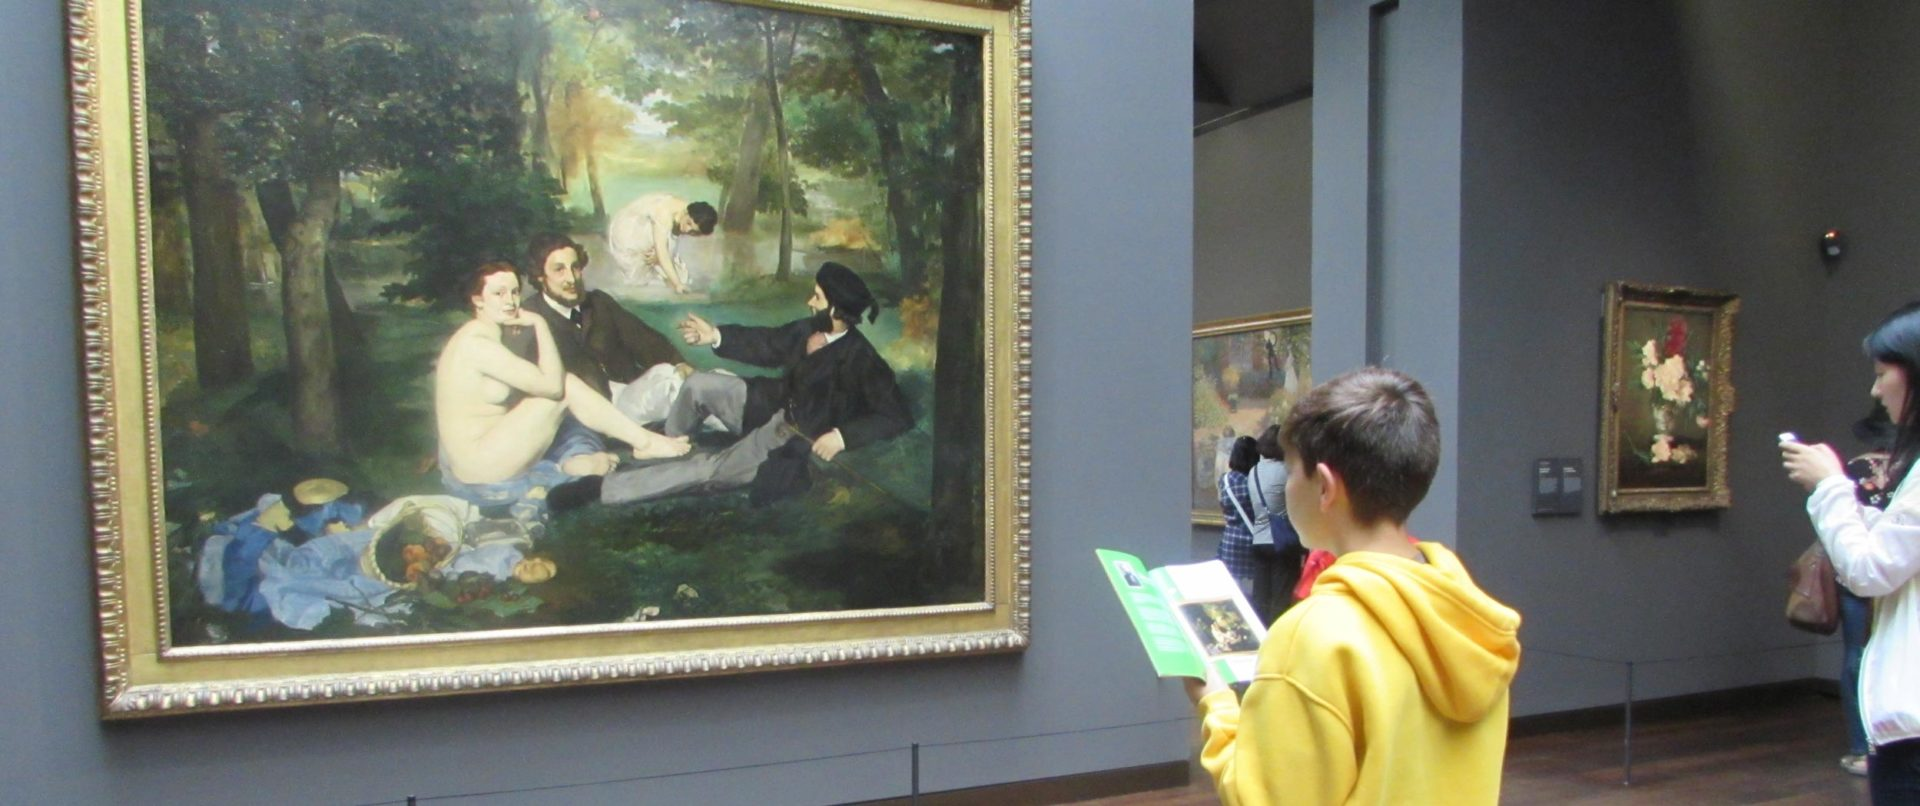 orsay-museum-children-tour-skip-the-line